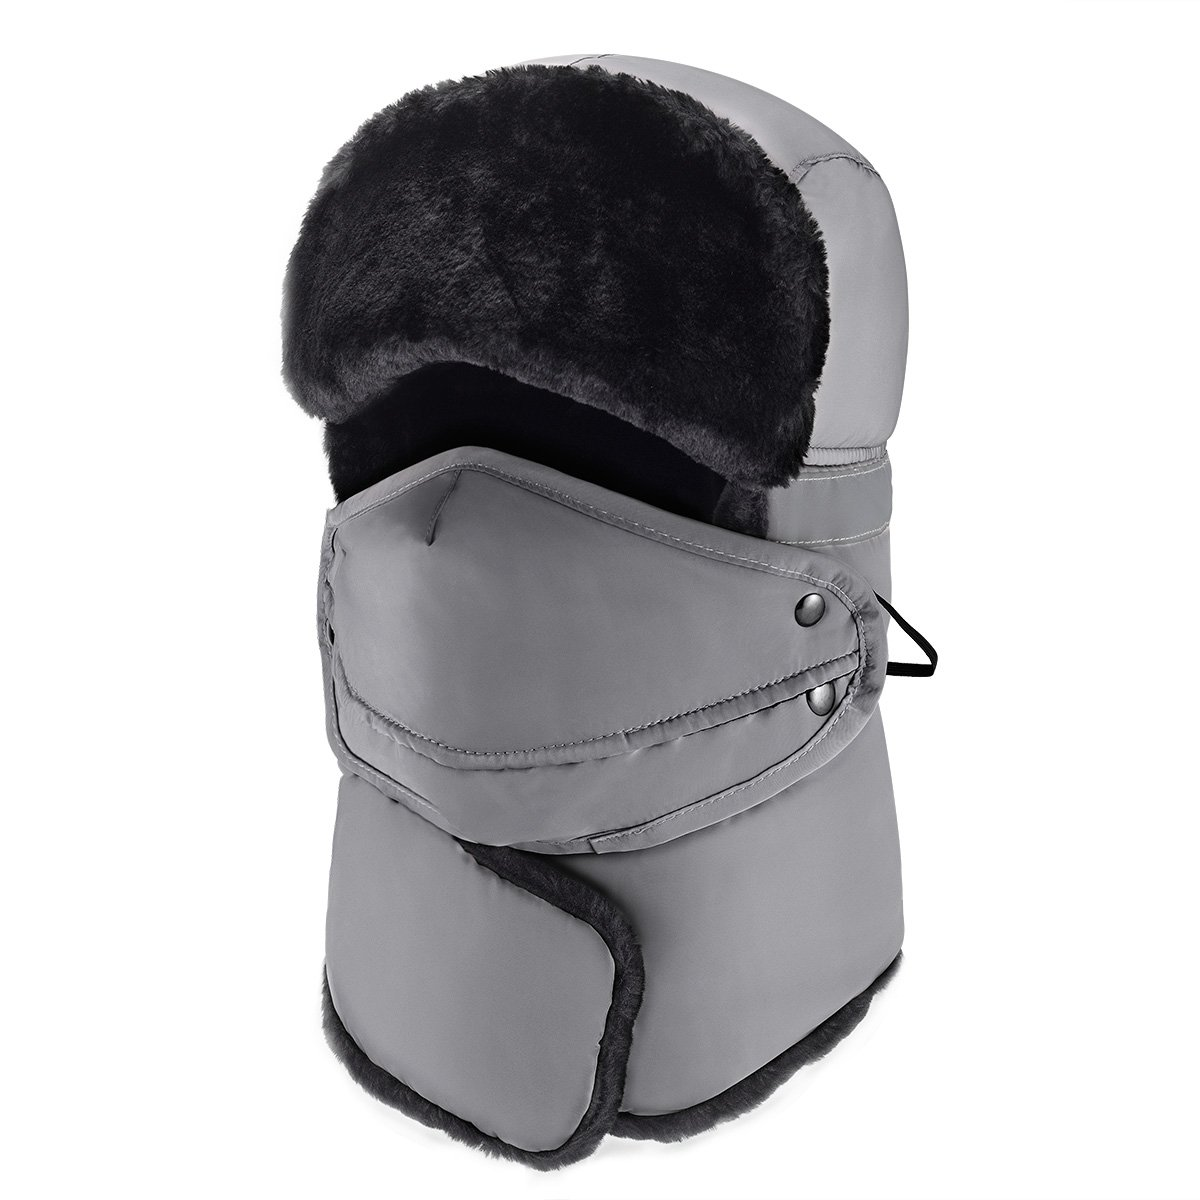 Details about (Gray) Mysuntown Unisex Winter Trapper Trooper Hat with  Windproof Mask 49ab3afdb0c9